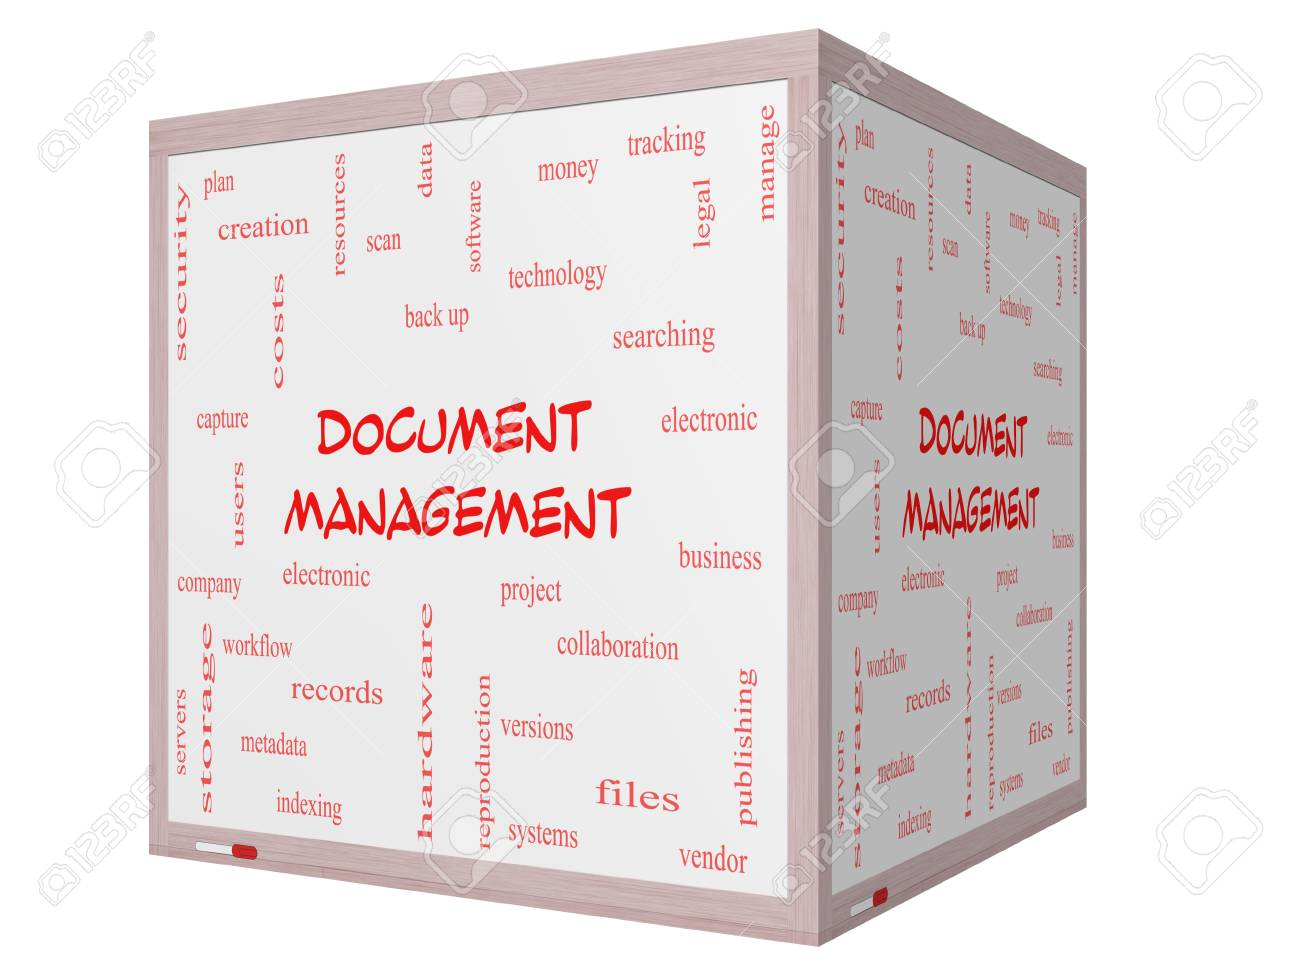 Document Management Word Cloud Concept on a 3D cube Whiteboard with great terms such as data, back up, files and more. Stock Photo - 26469806